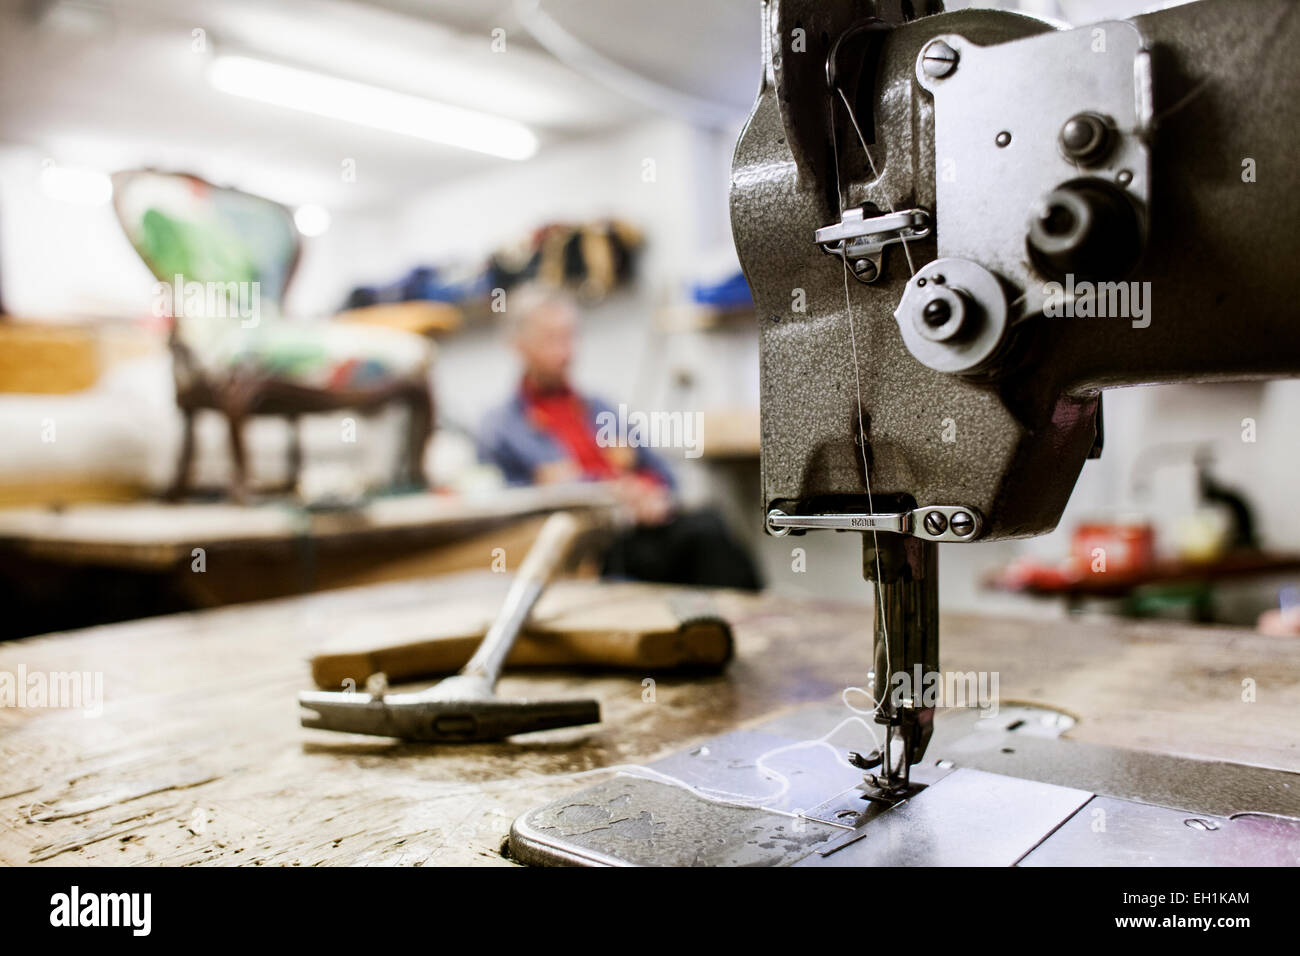 Sewing machine in furniture making factory - Stock Image